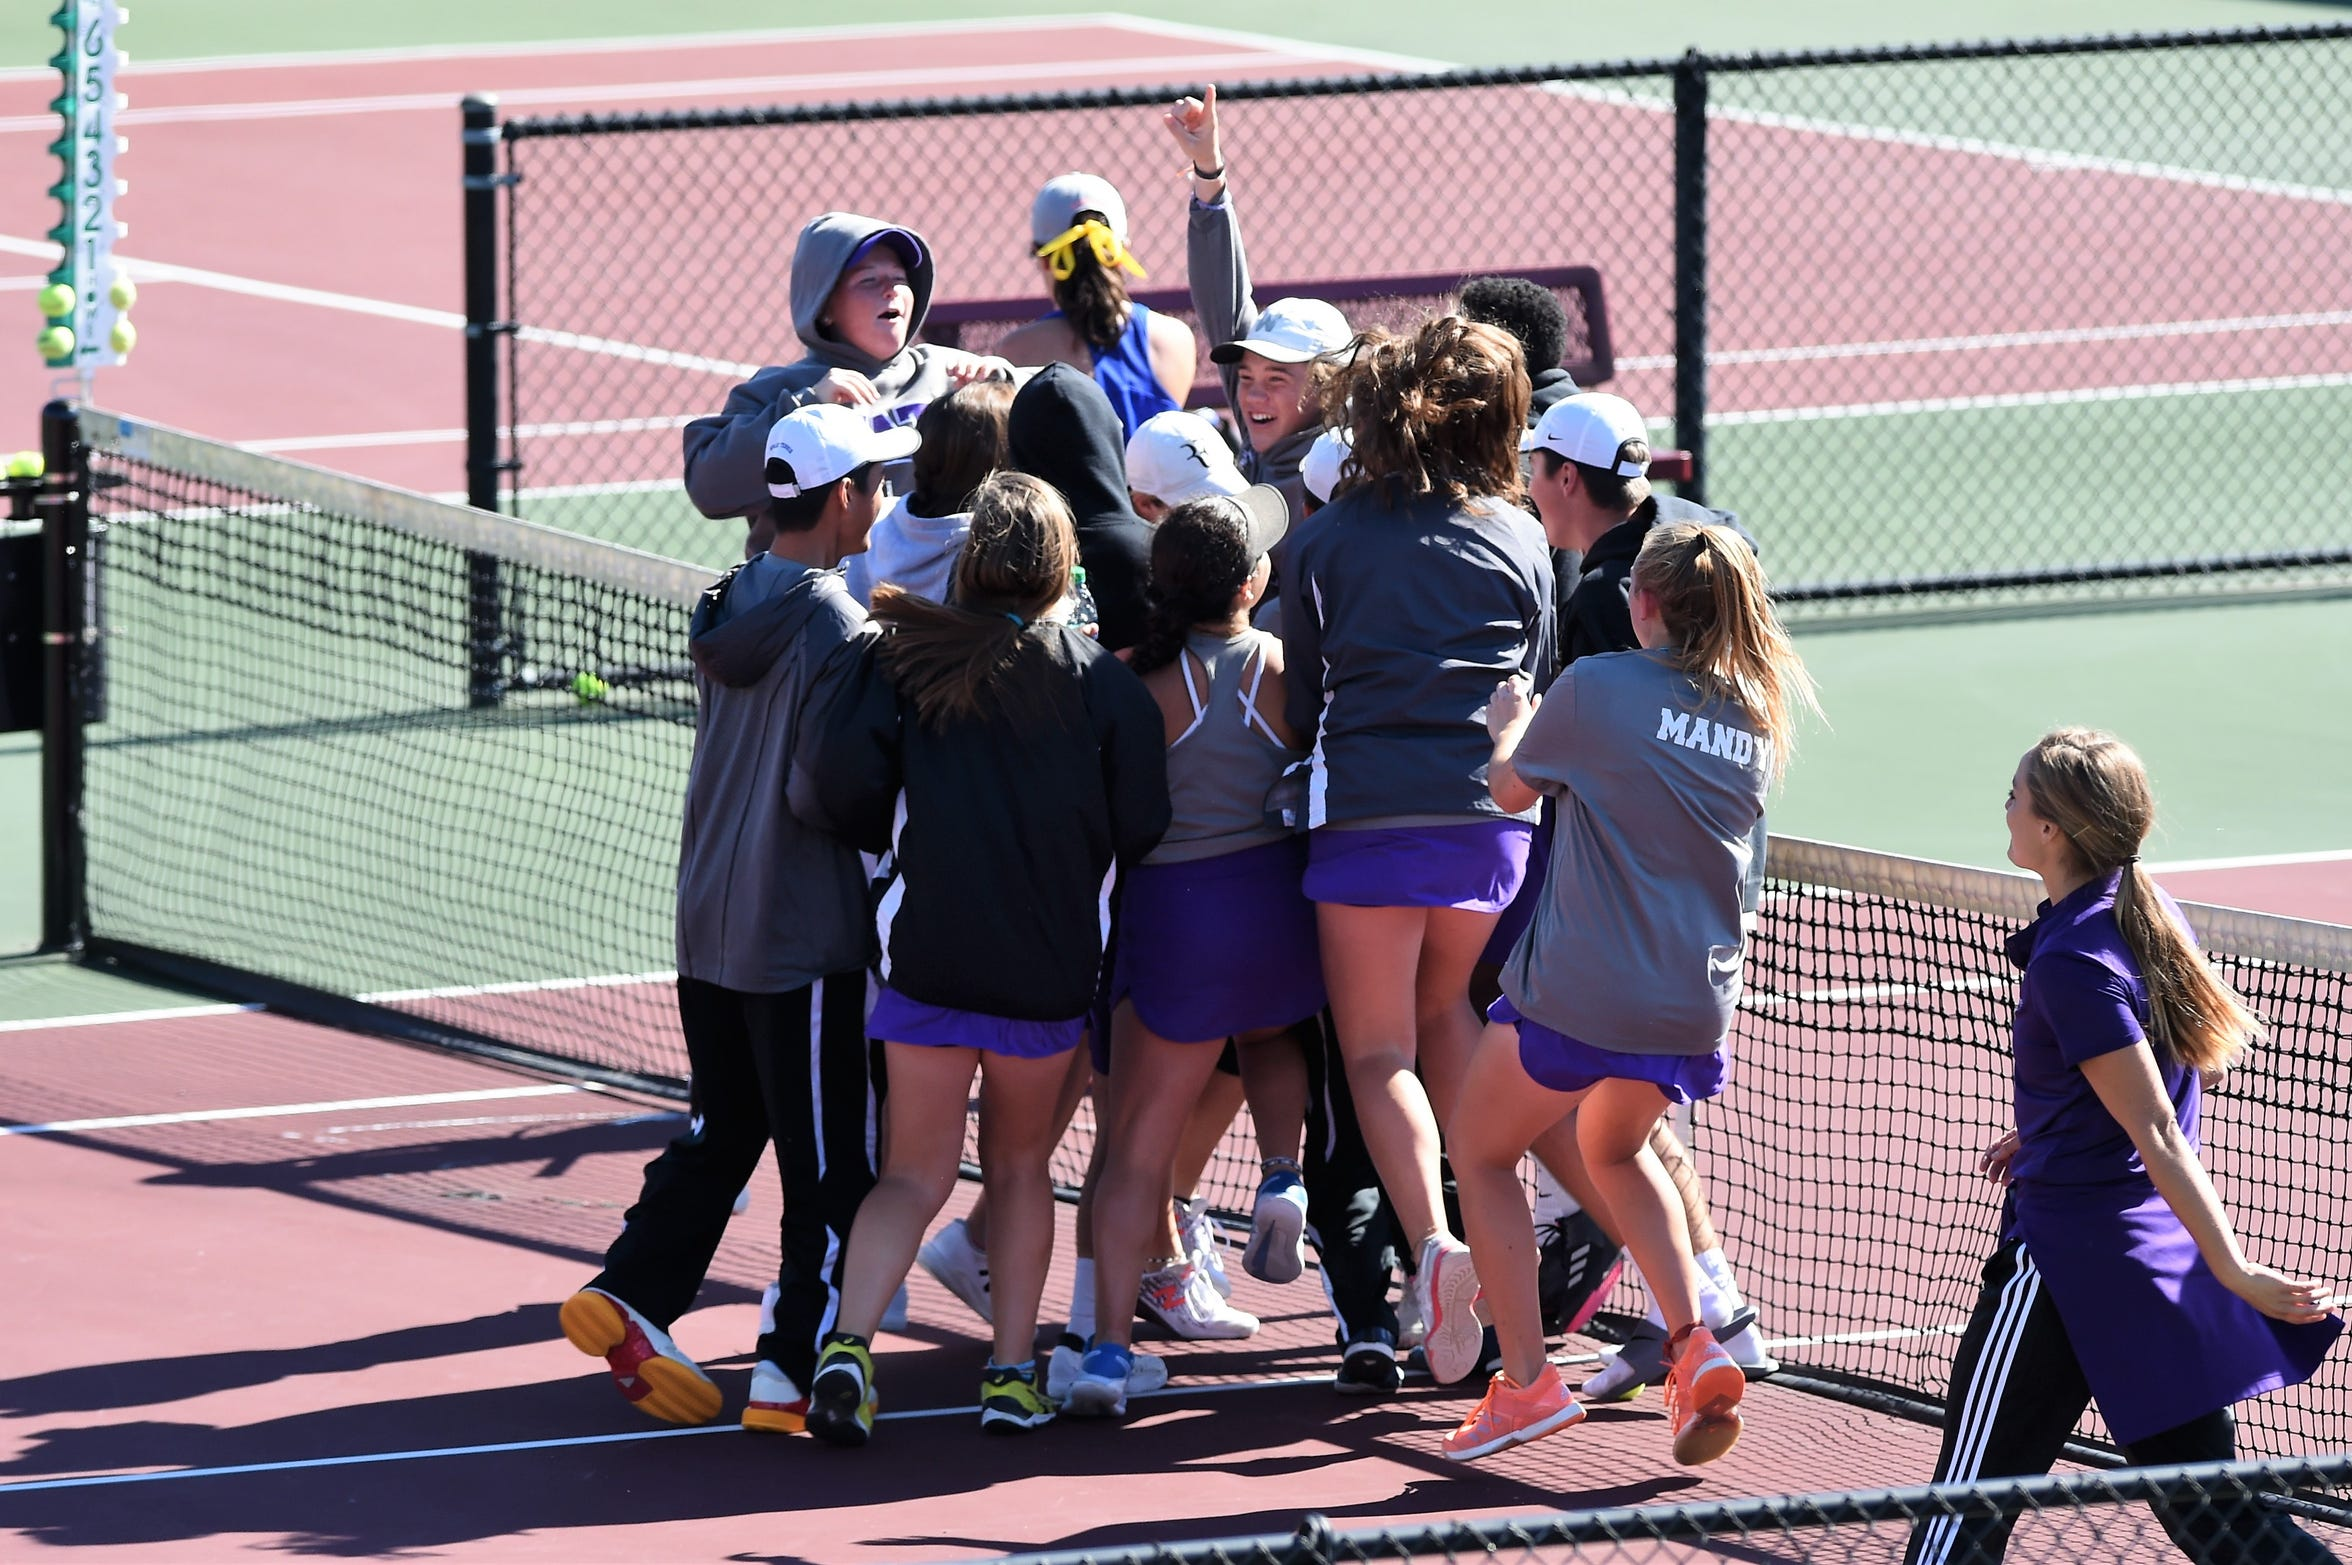 Wylie celebrates winning the 10th match in the Class 5A state semifinal against San Antonio Alamo Heights at the Mitchell Tennis Center in College Station on Thursday, Nov. 1, 2018. The Bulldogs won 12-7 to advance to the state final.